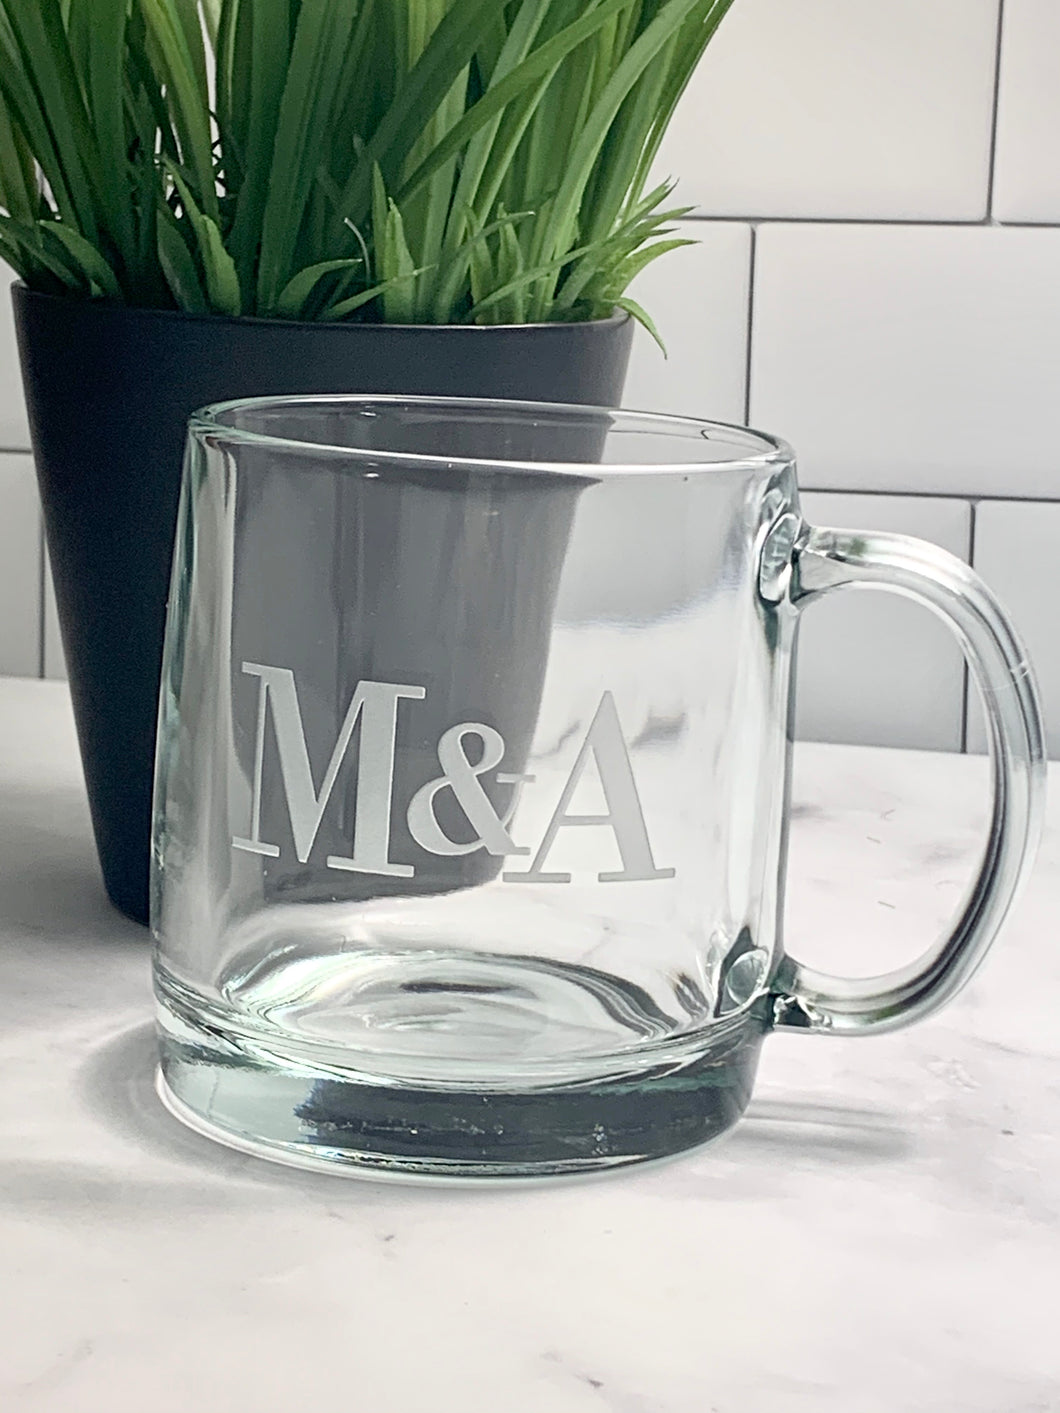 13 oz Coffee Mug Personalized with Monogram